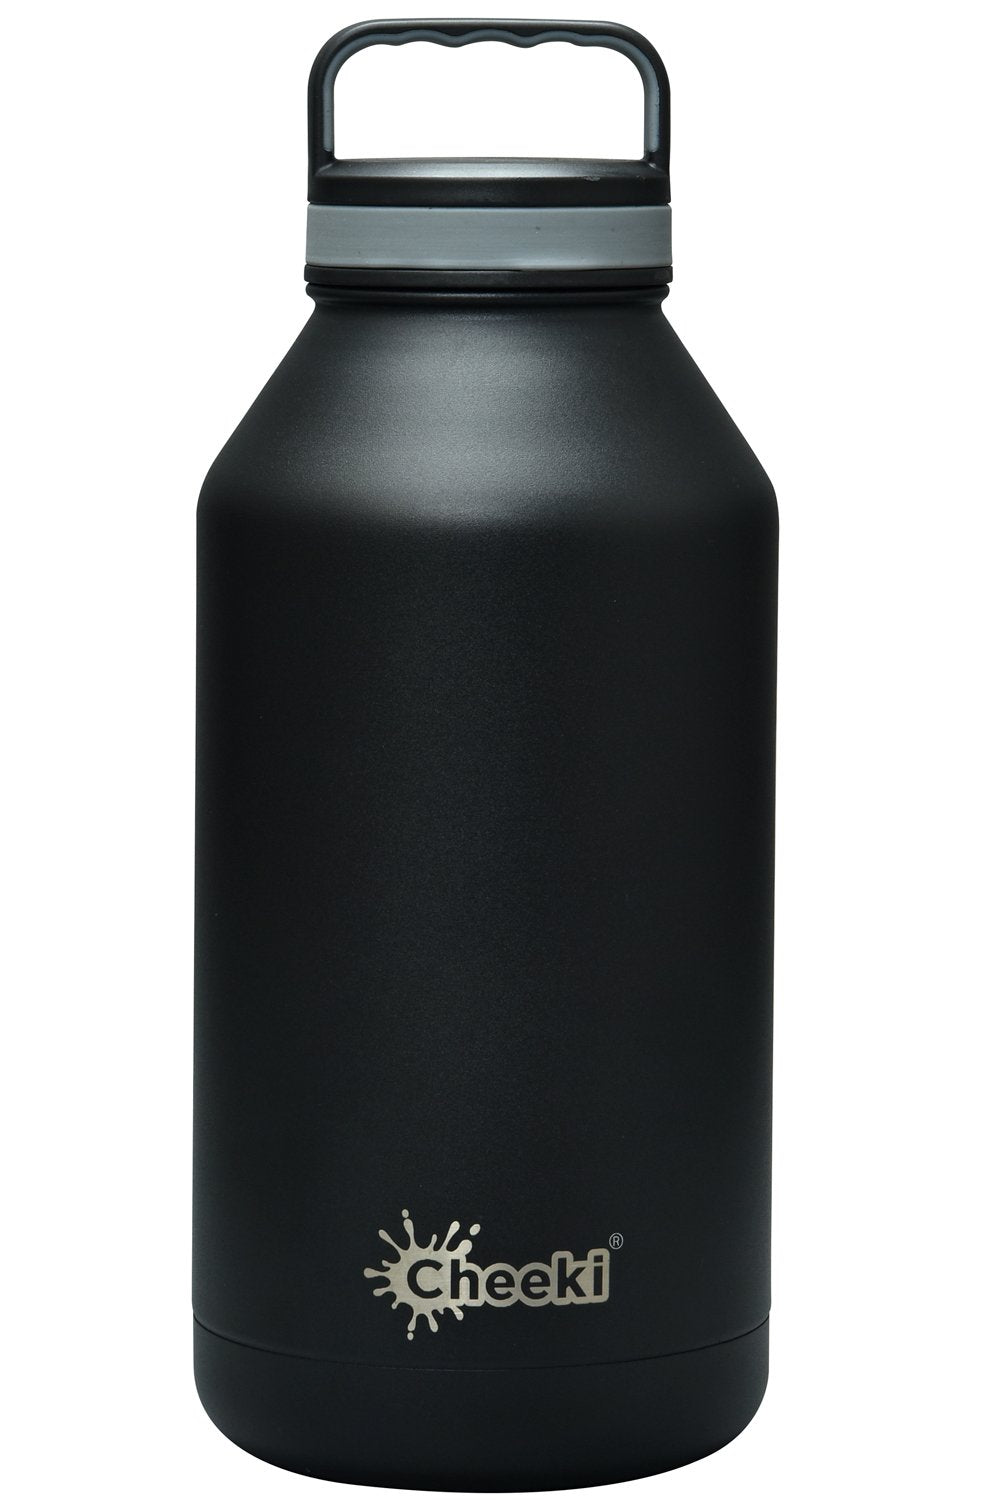 Cheeki 1.9L Insulated Water Bottle - Live Pure and Simple